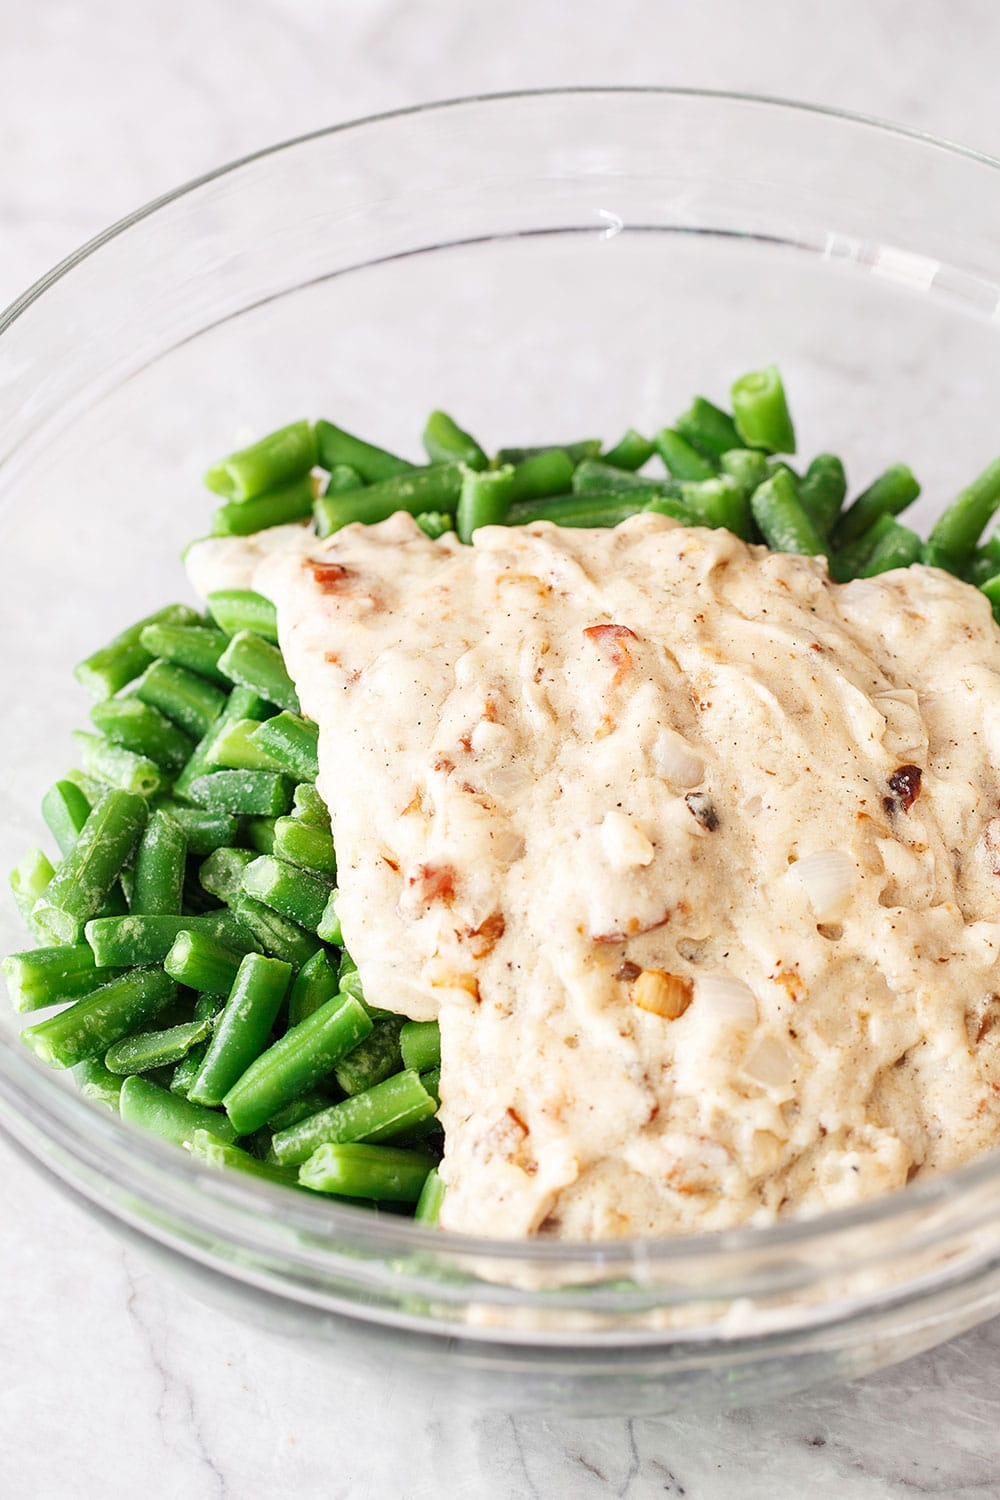 Fresh green beans and gravy mixture in a bowl for cheesy green bean casserole